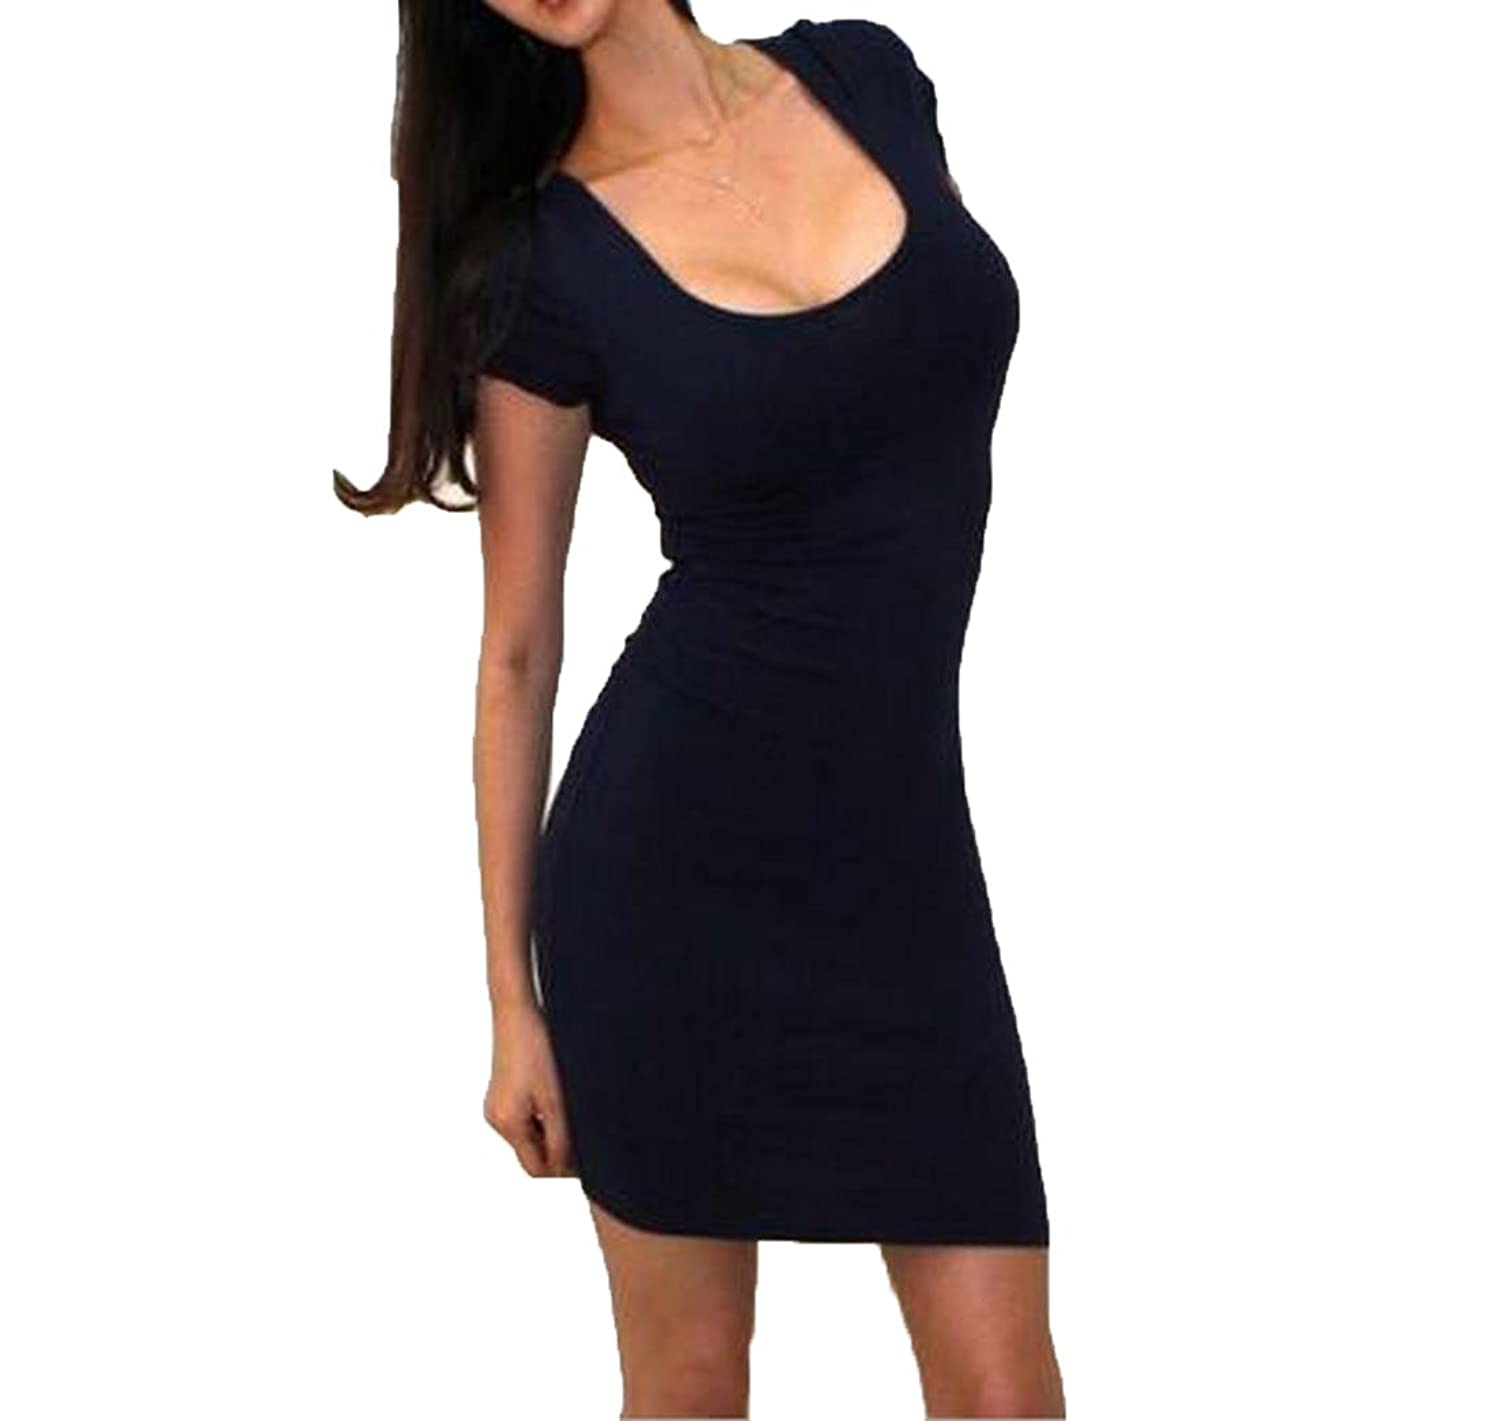 Abetteric Women's Round Neck Stretch Slim Bodycon Dress